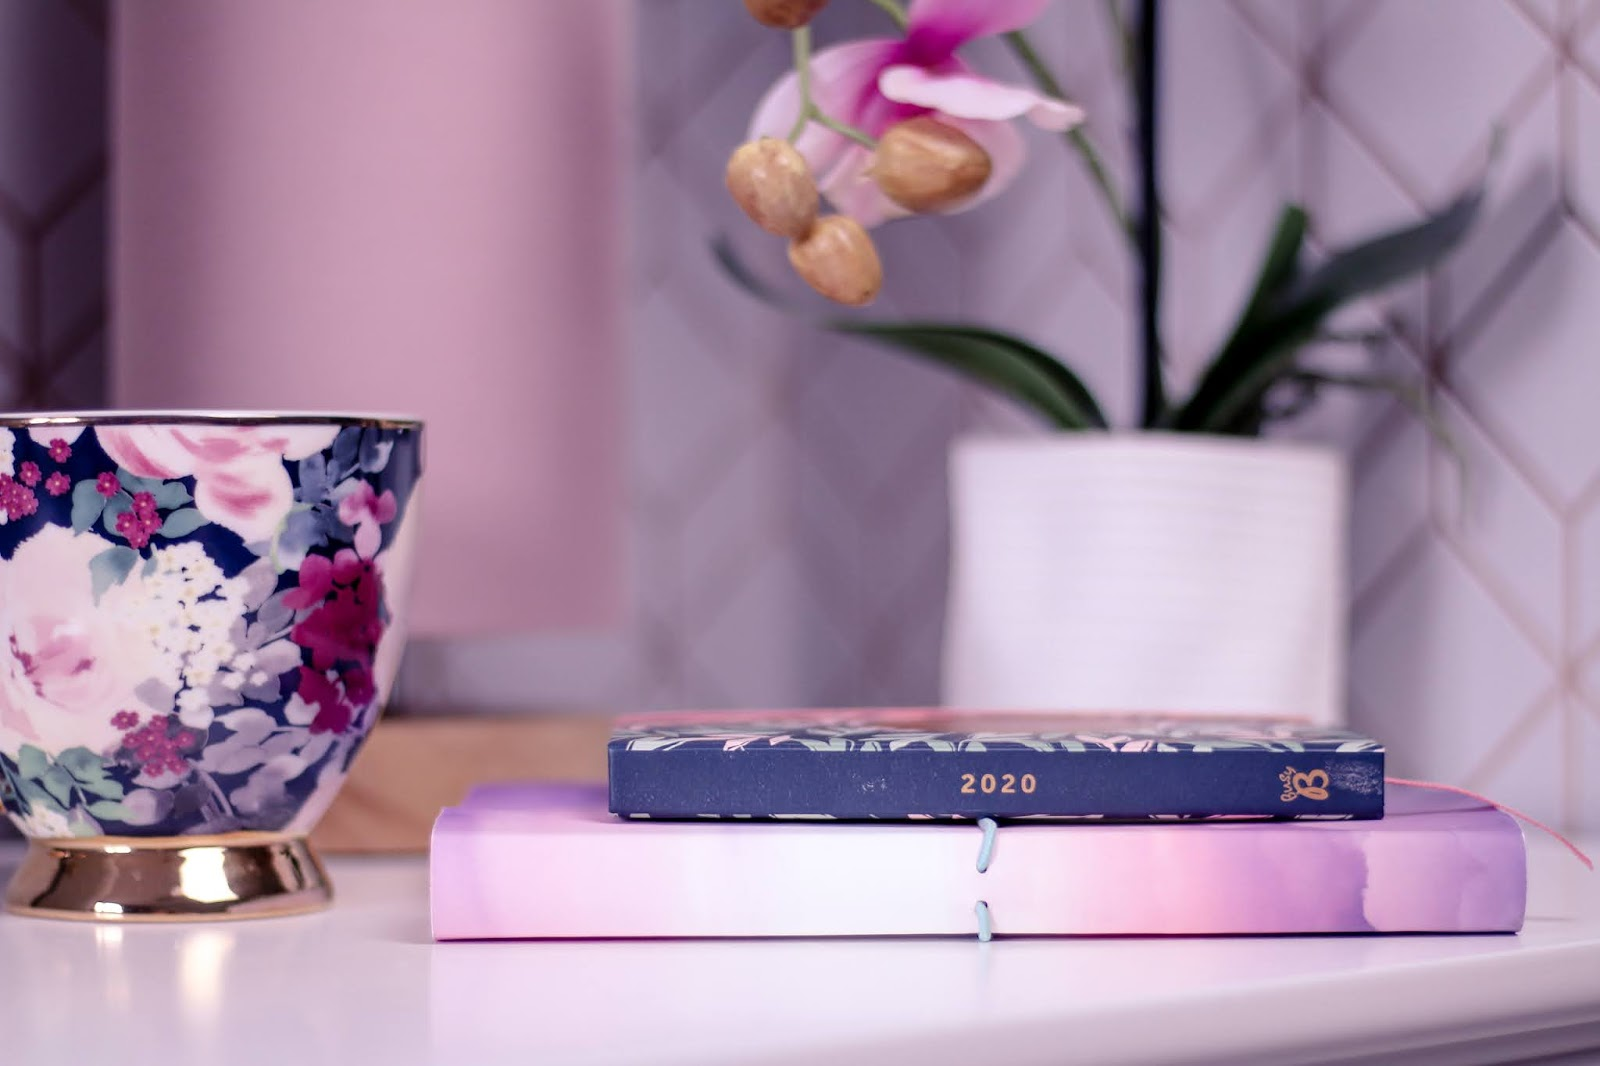 Close up photo of a 2020 diary on a pink and purple notebook and a flower tea cup on top on a white side table with a pink lamp and faux pink orchid in the background blurred.